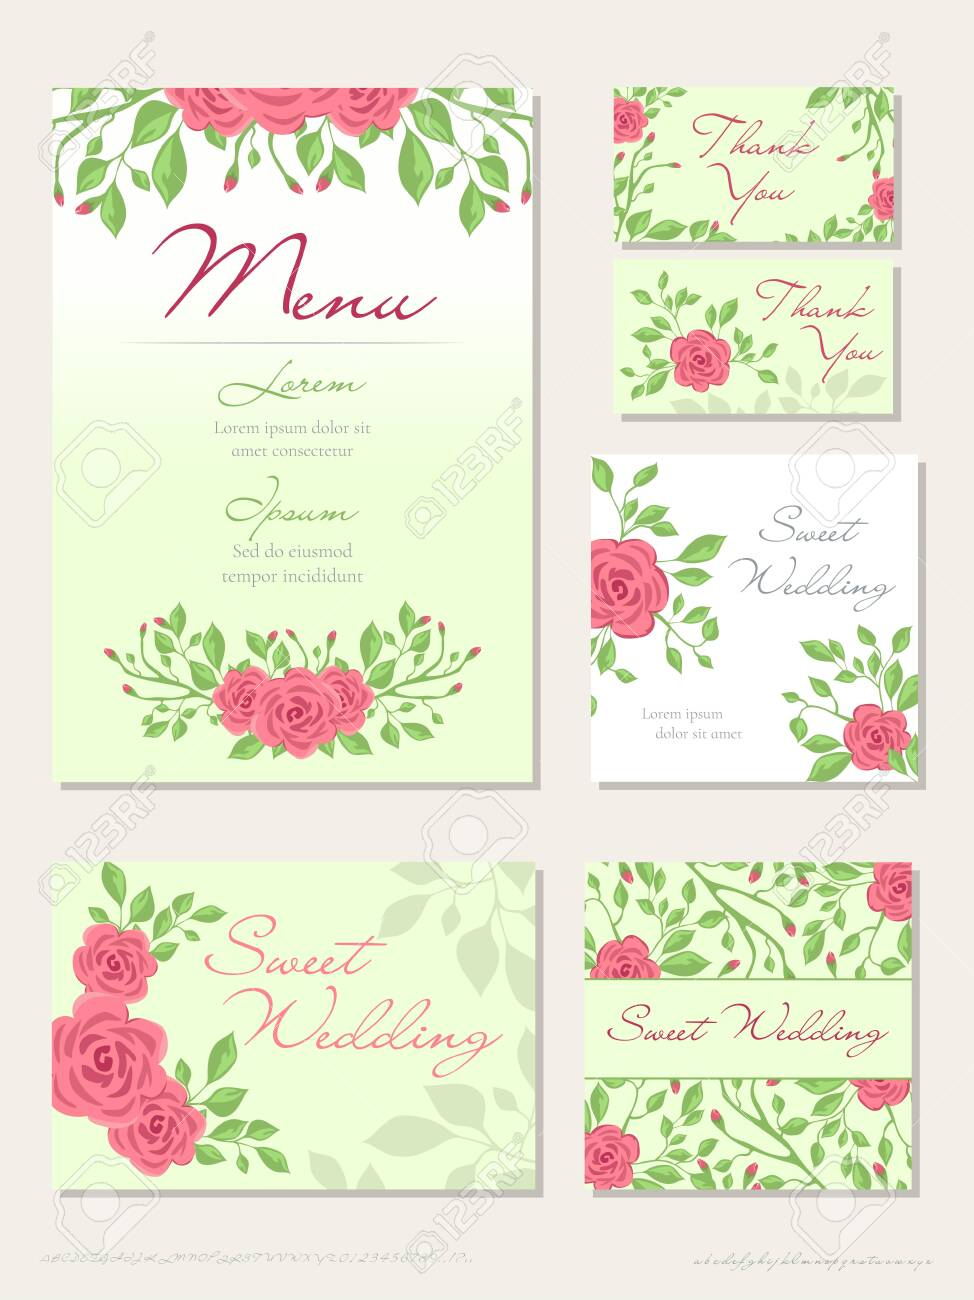 Vector set of Wedding design concept with Invitation, menu, Rsvp, cute card, envelope, cover, poster. Floral wedding design concept with Rose flower, eucalyptus, romantic trendy greenery bouquet - 123789330